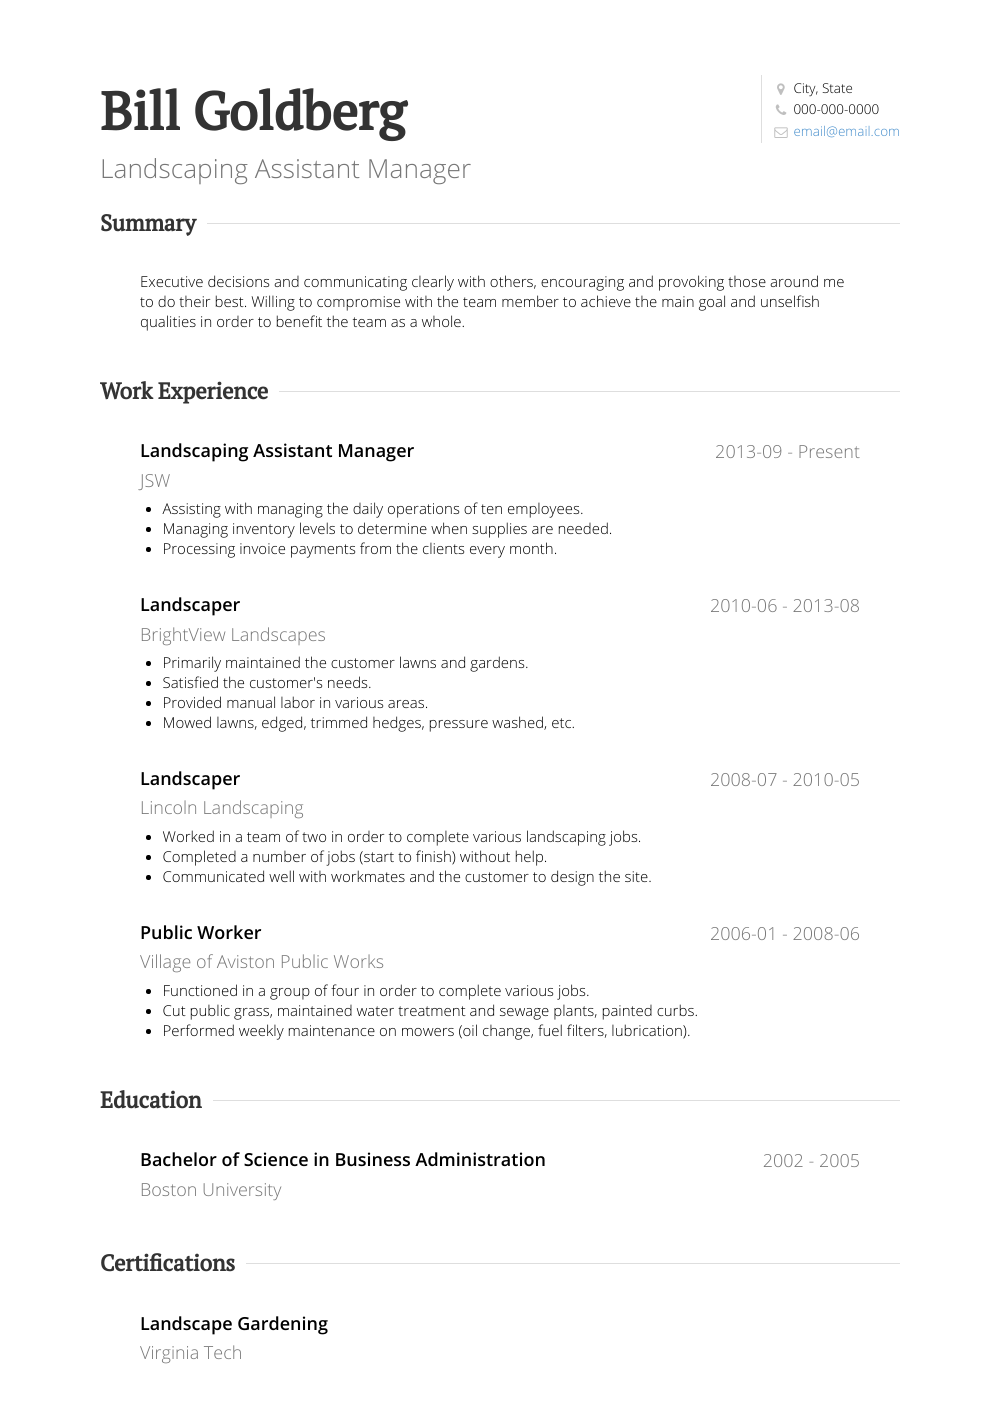 Landscaping Assistant Manager Resume Sample and Template